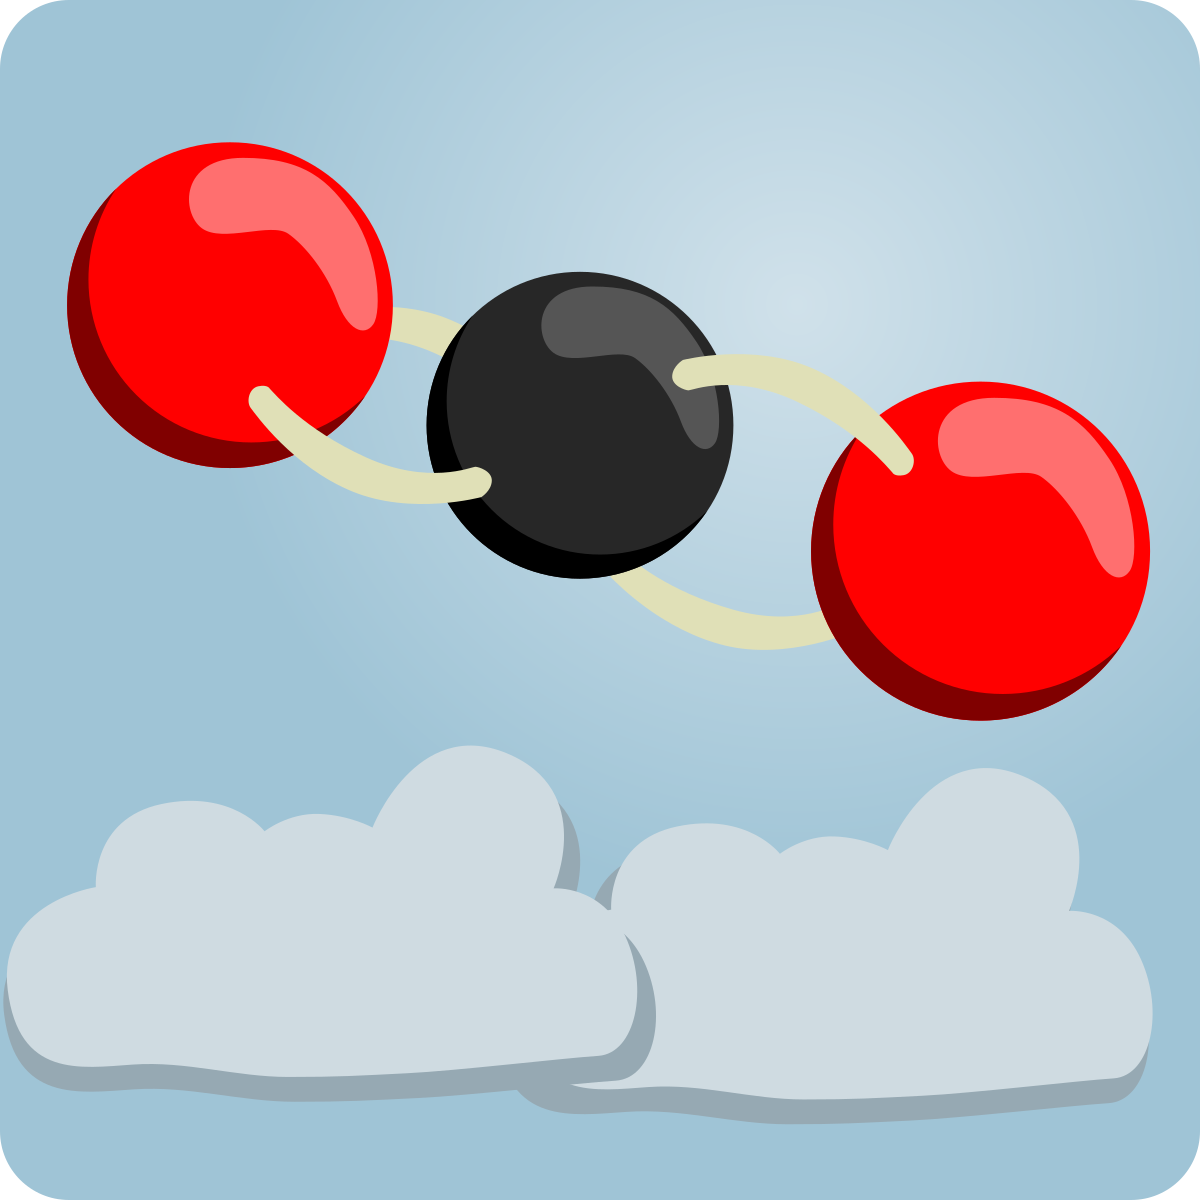 A chemical structure for carbon dioxide